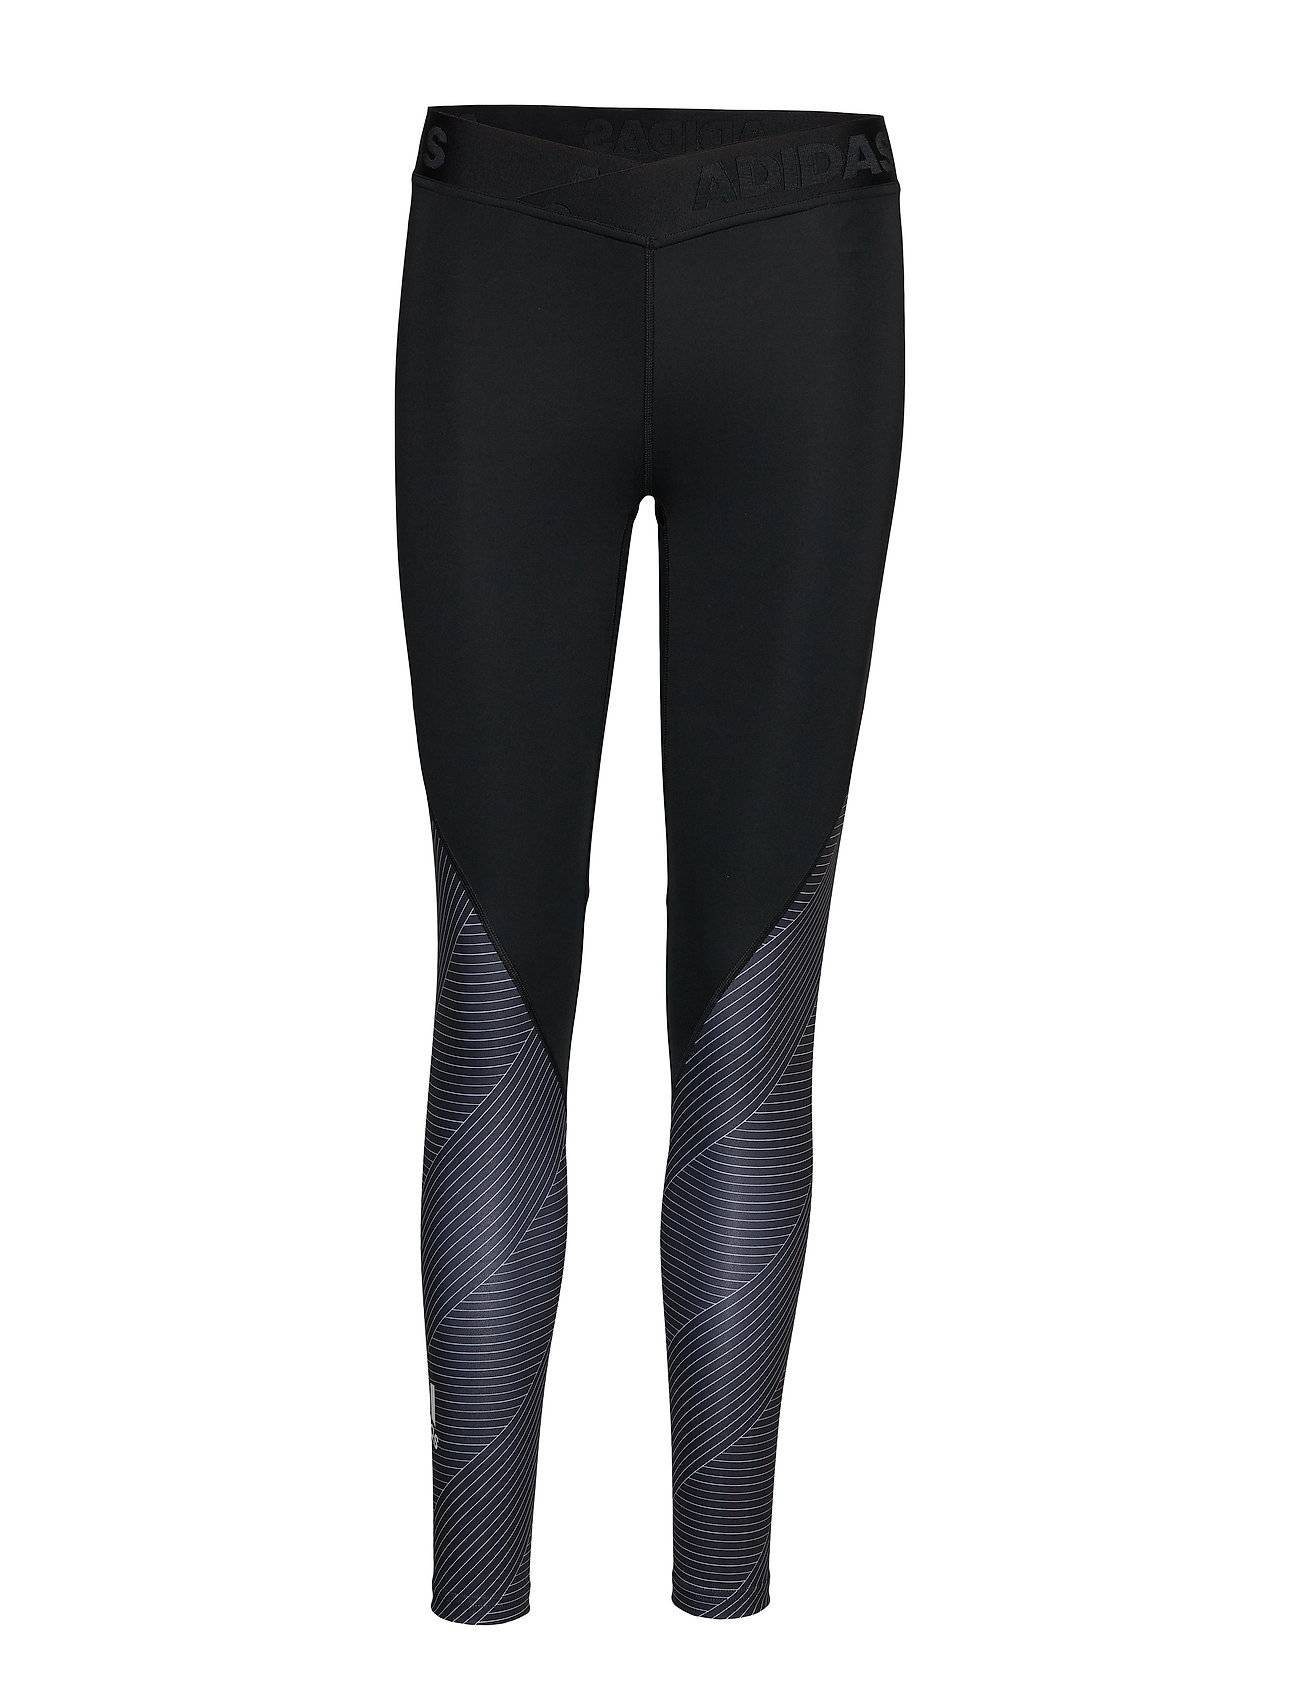 Image of adidas Performance Ask 7/8 Str T Running/training Tights Musta Adidas Performance